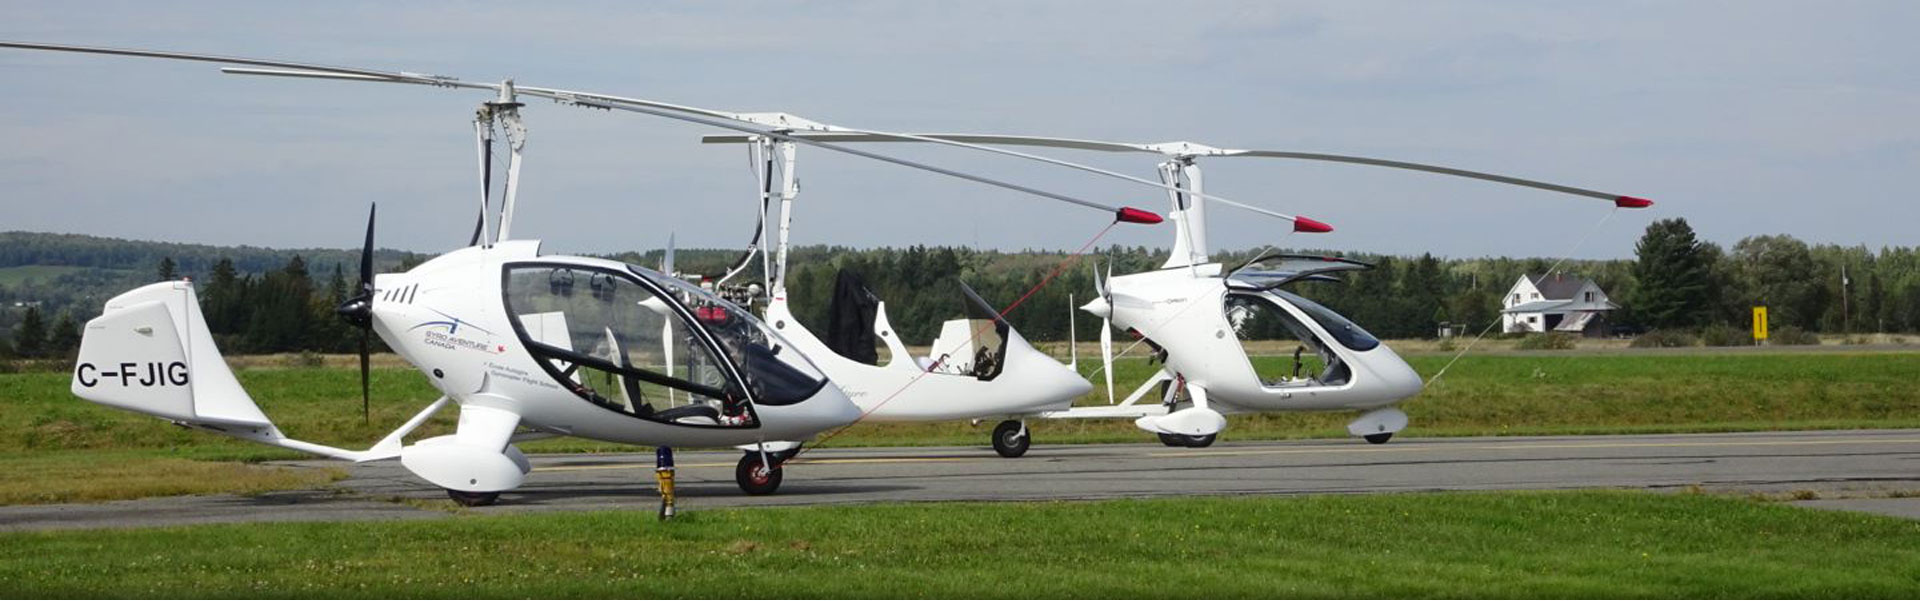 Trendak, DTA J-RO and Magni Gyro autogires  Gyrocopter for